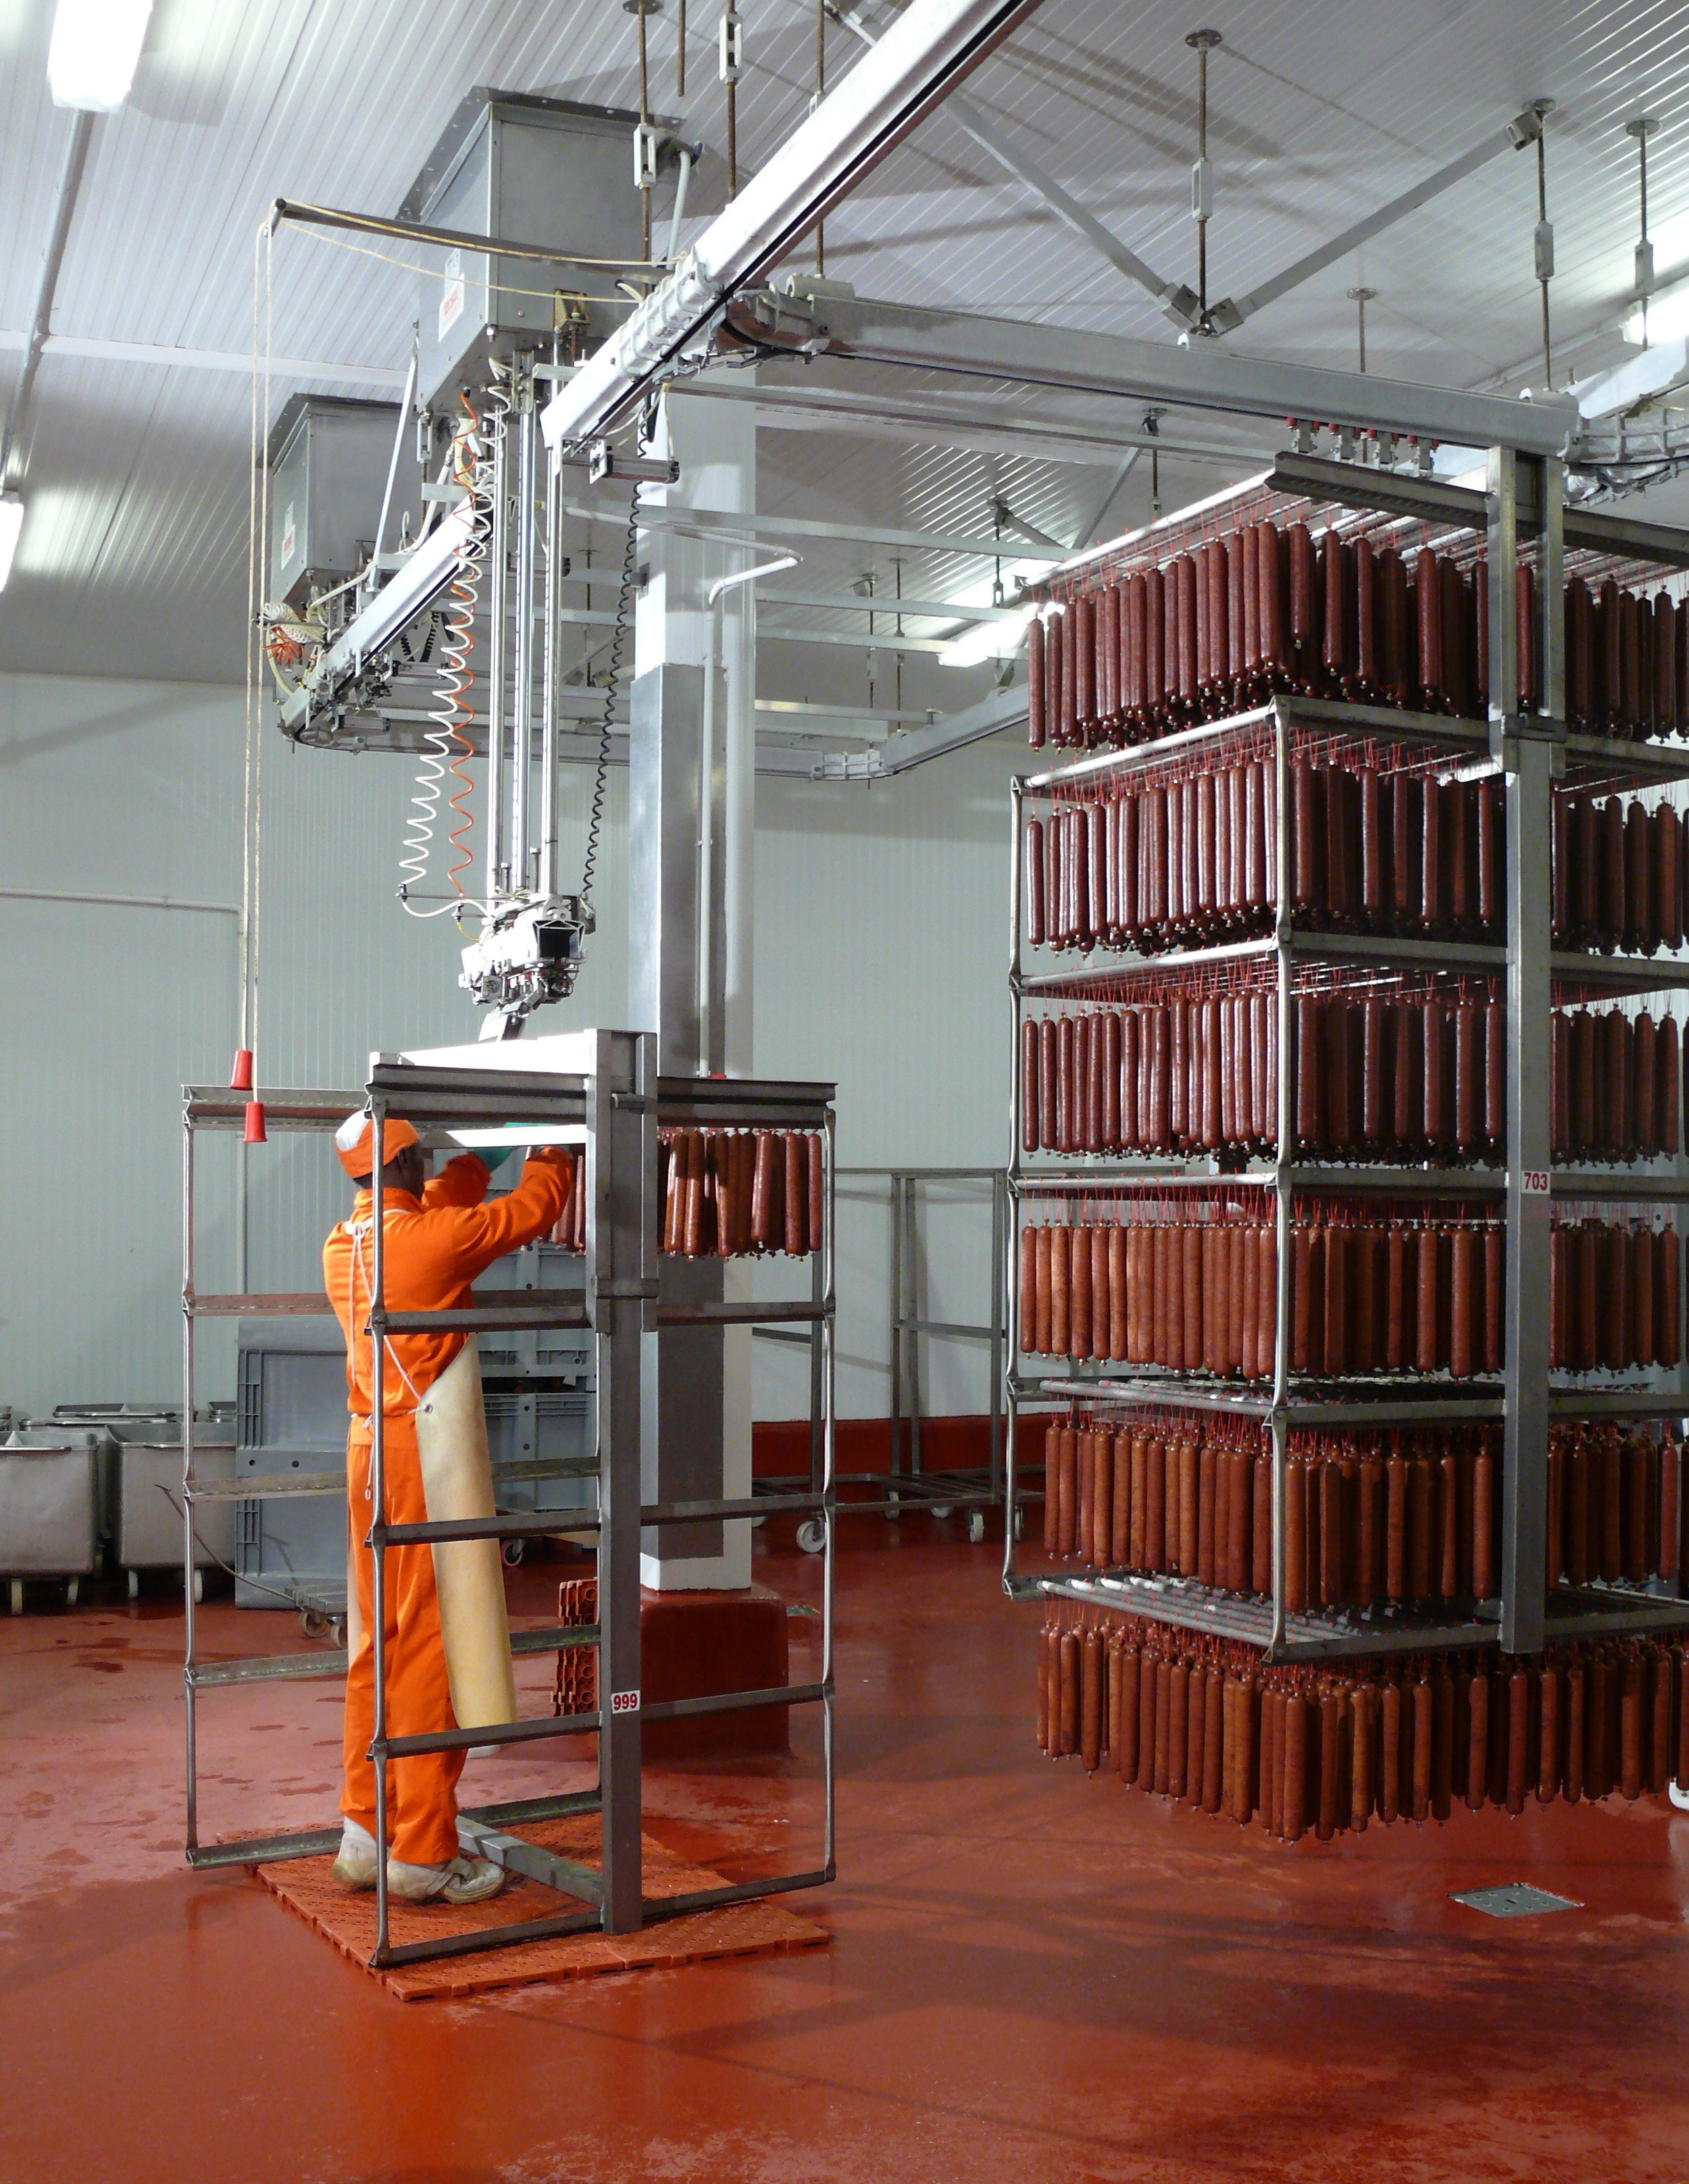 Lowerator for a Manual Load of a Salami Racks - 01.jpg